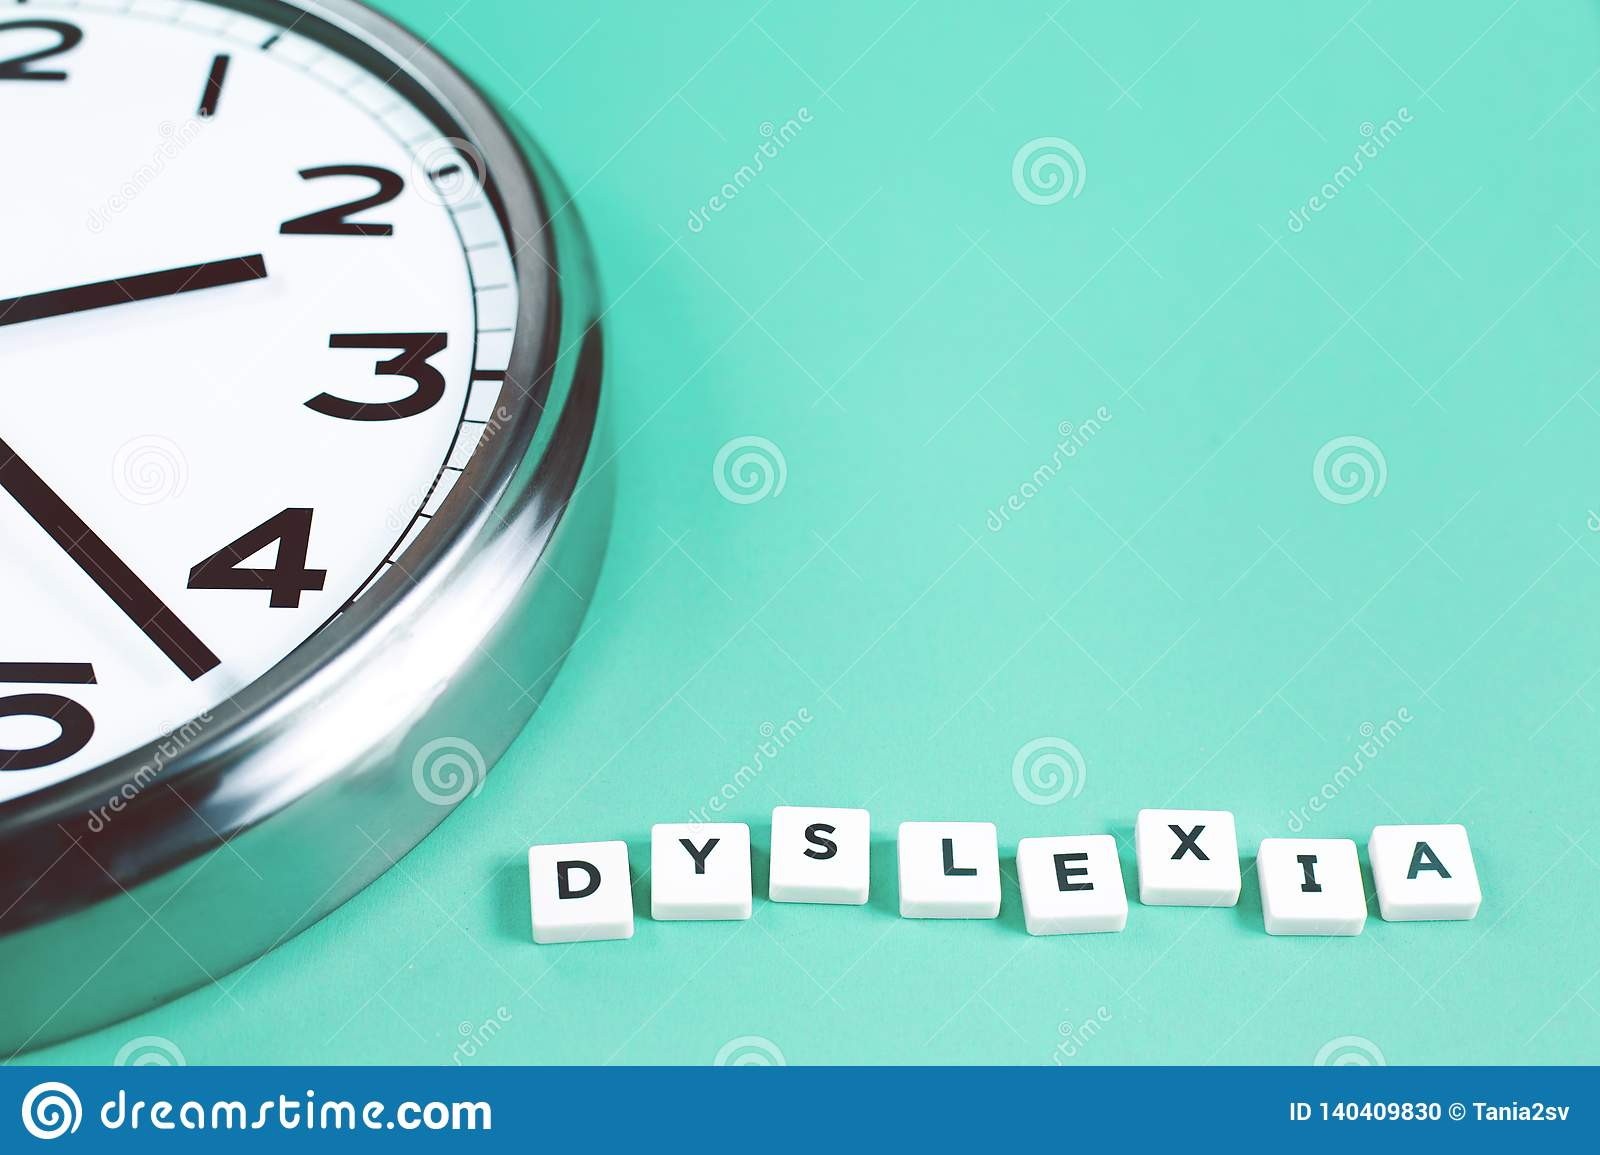 Dyslexia and read words with a big clock